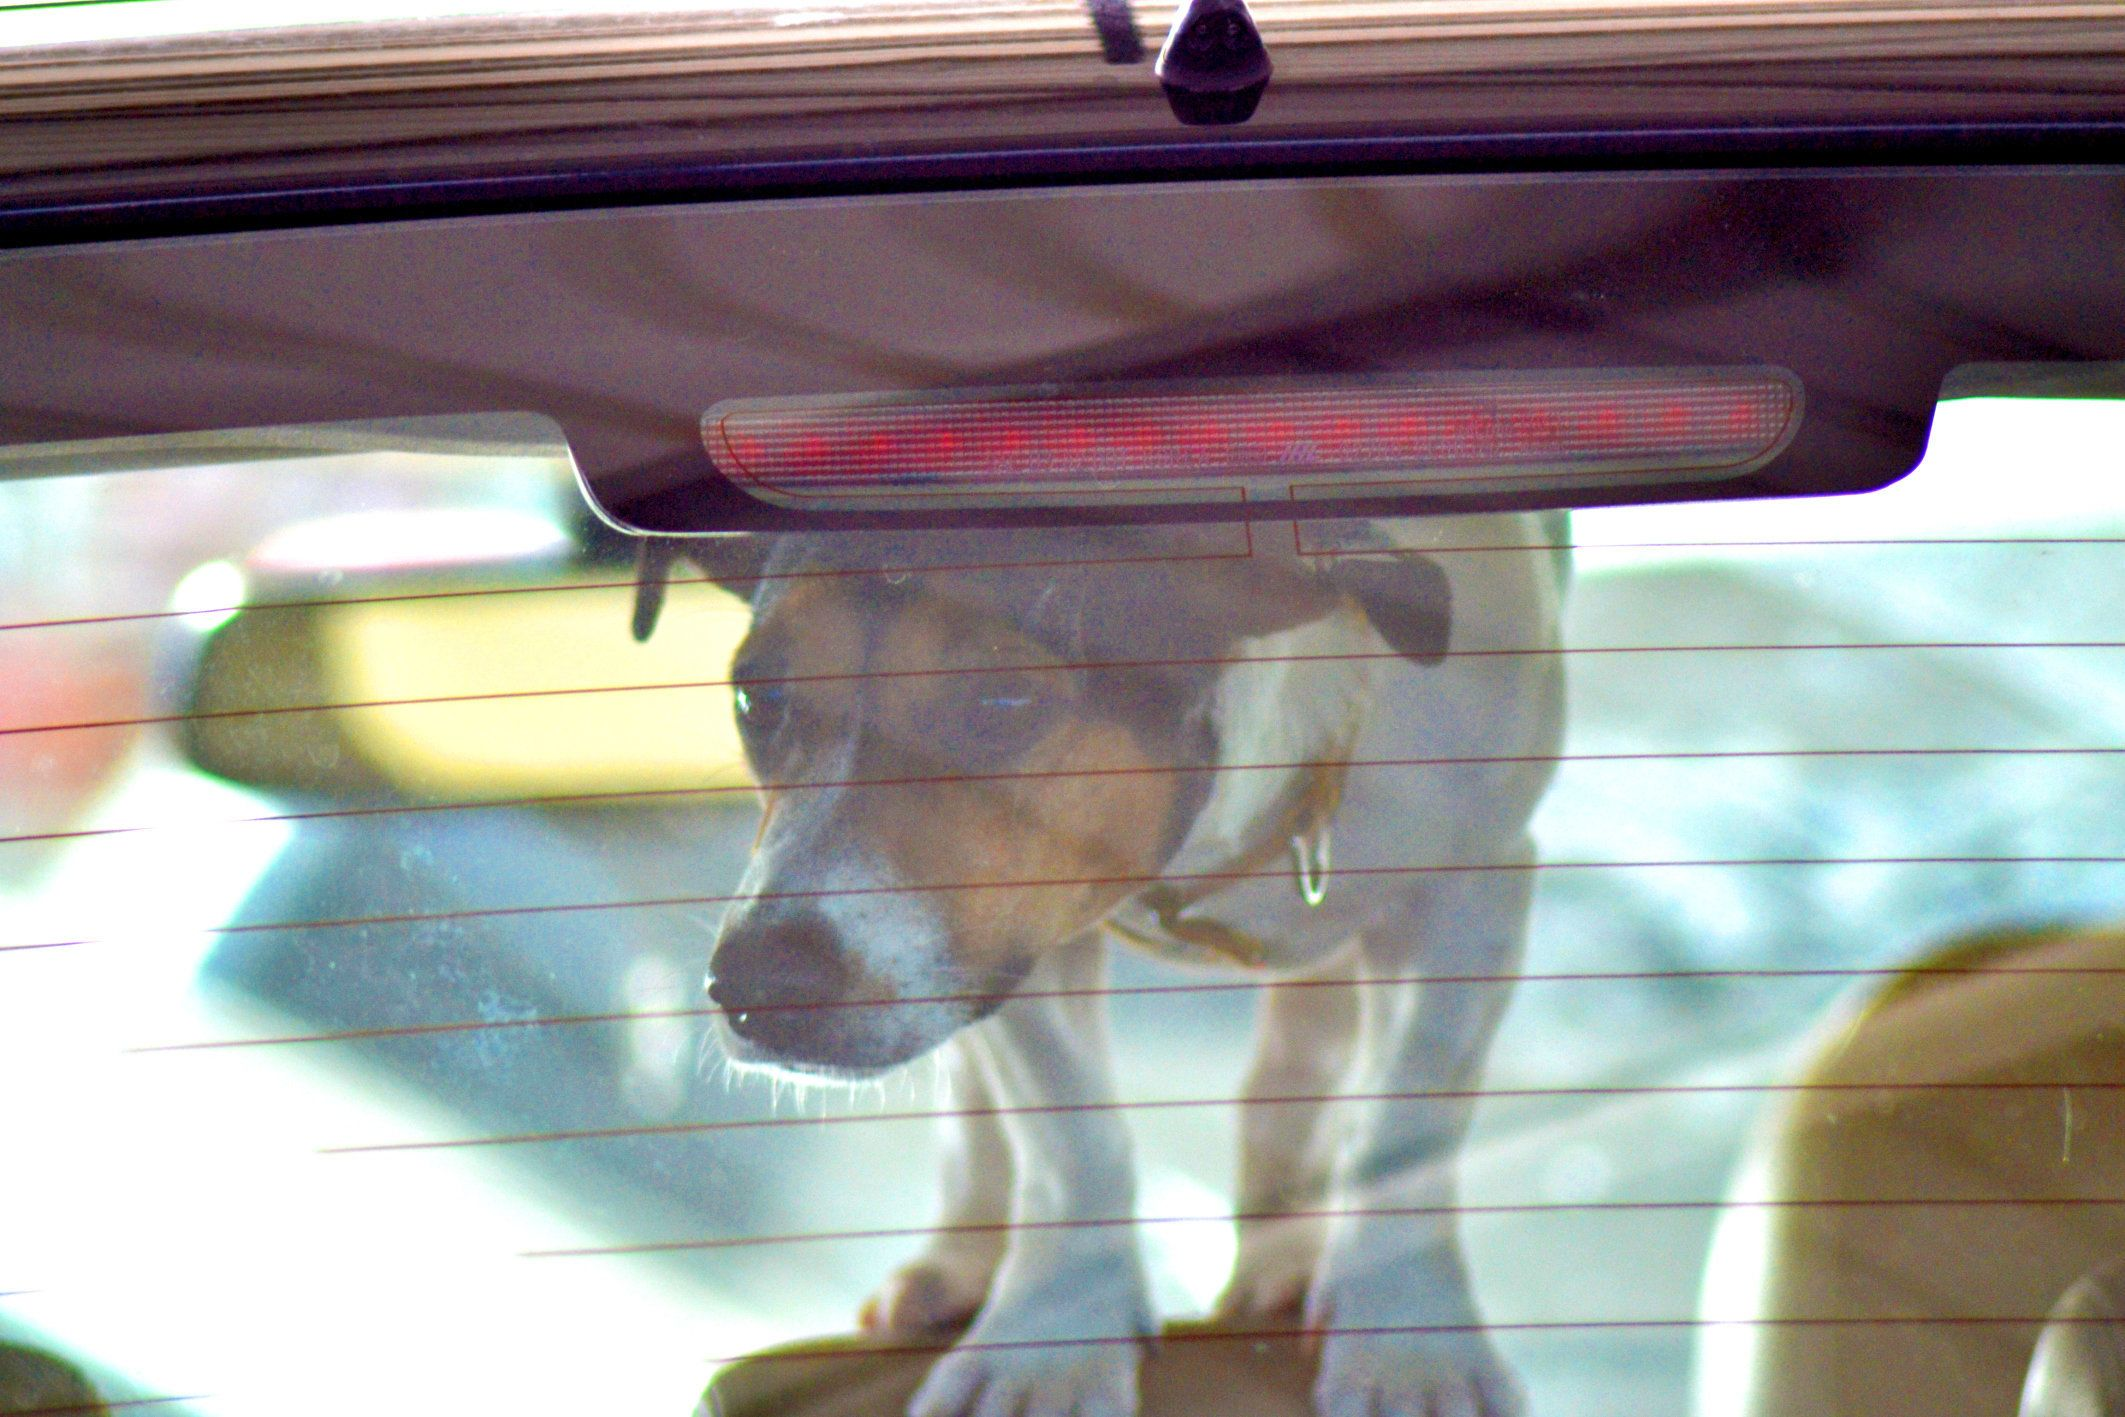 It's now legal for Californians to break into locked cars to rescue animalsif there's reason to believe they arei